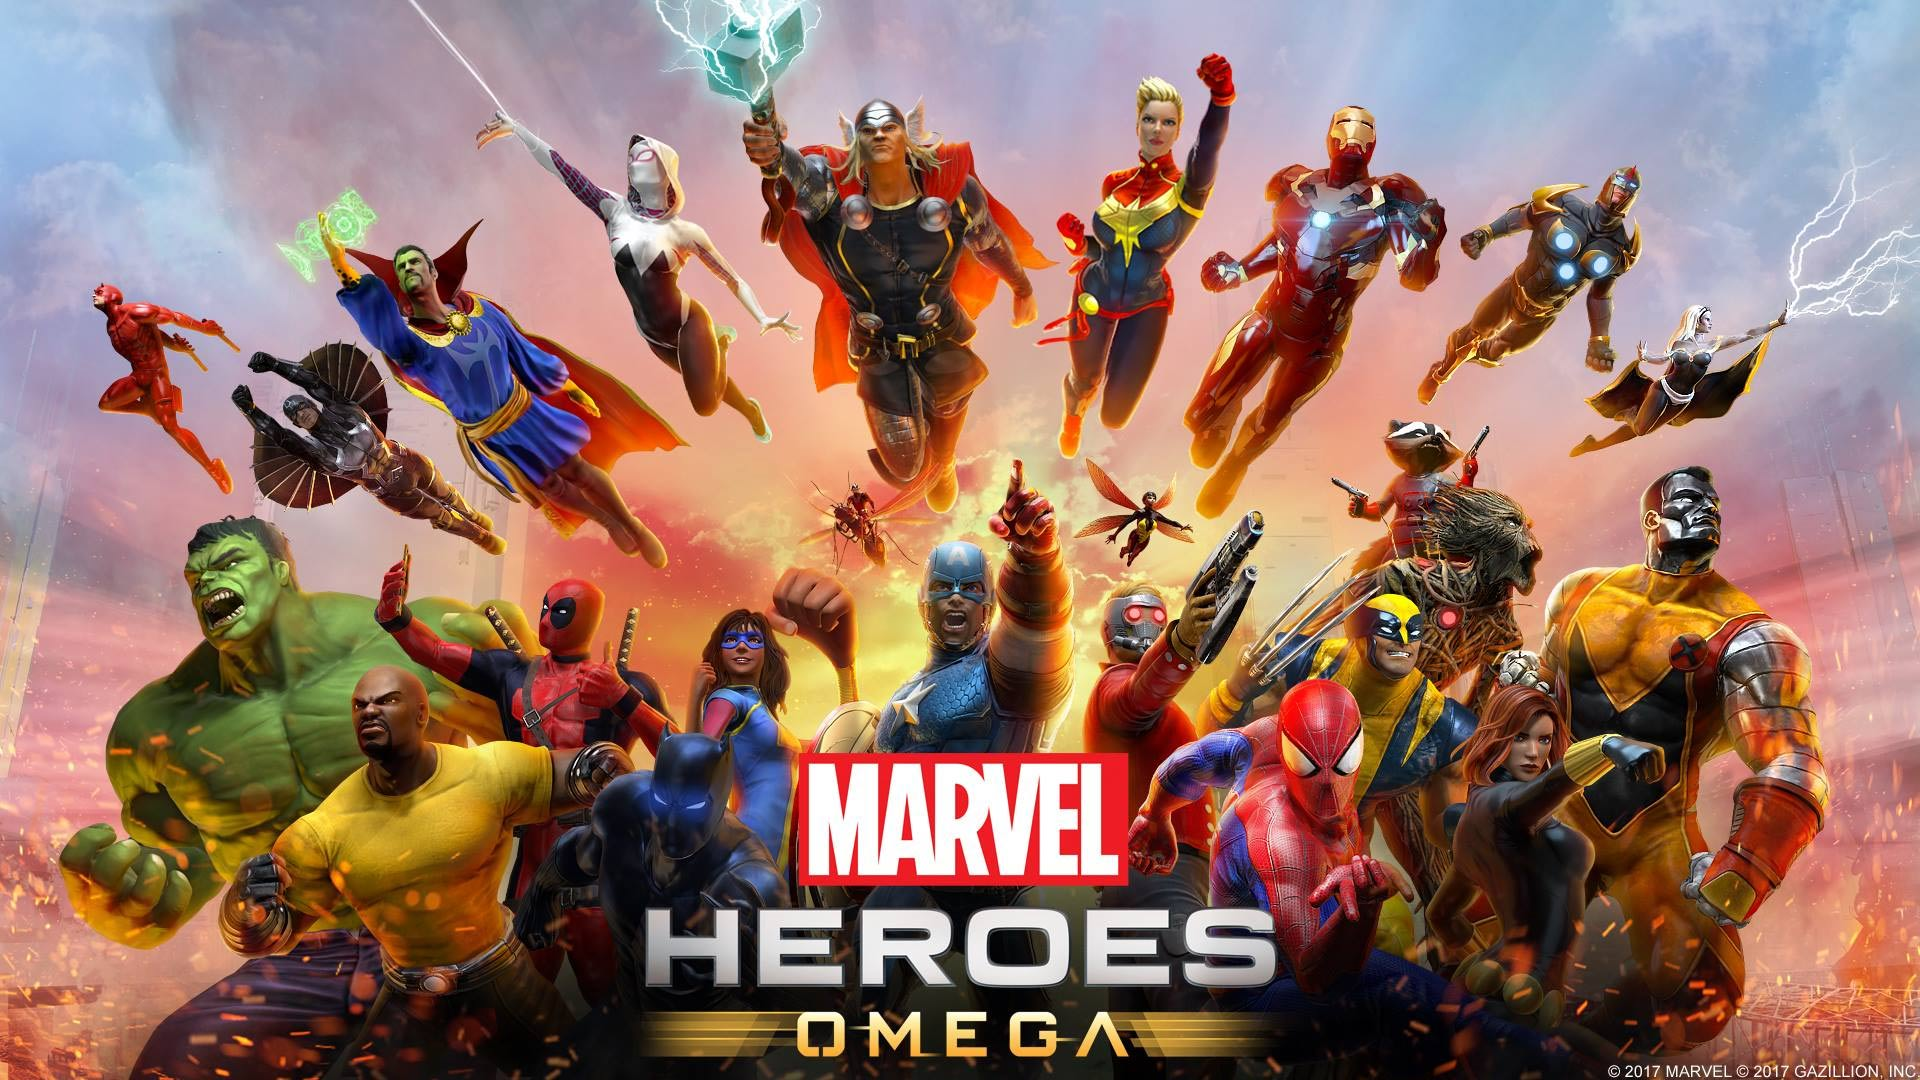 Marvel Heroes Omega Wallpaper Screenshot